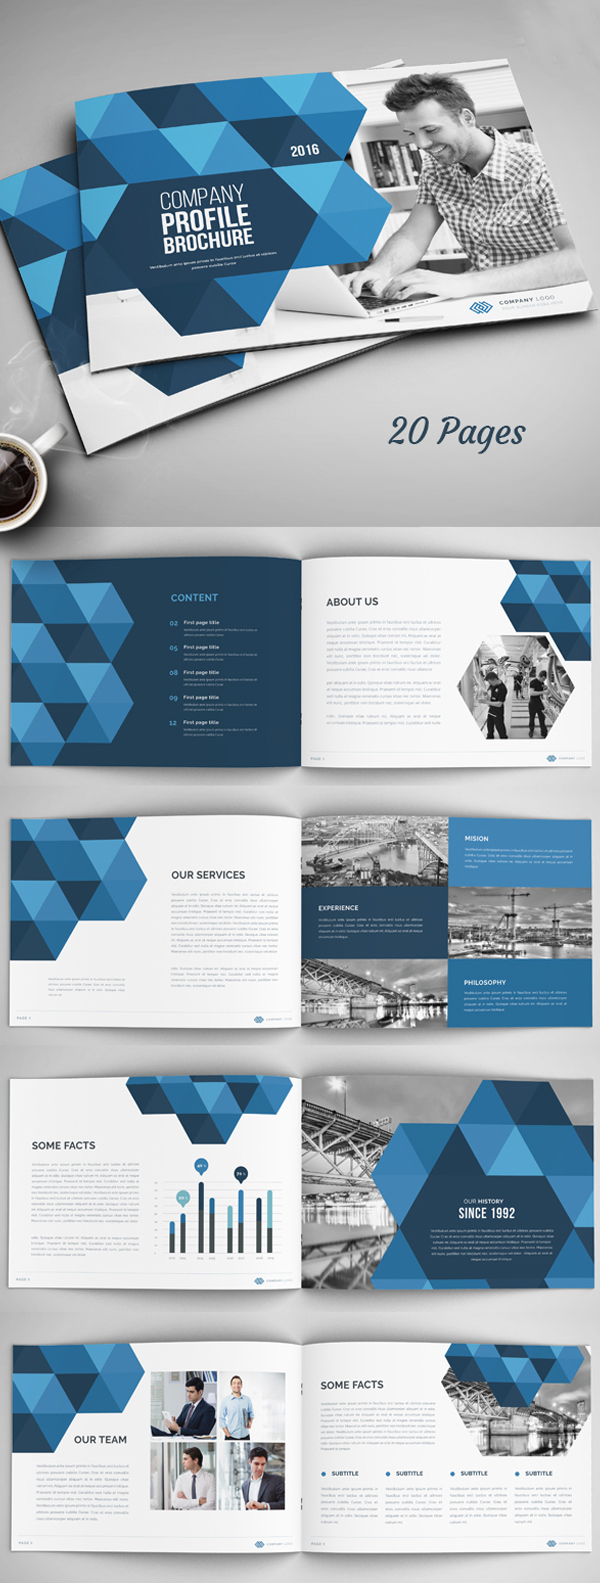 20 Pages Annual Report / Company Profile Brochure Template